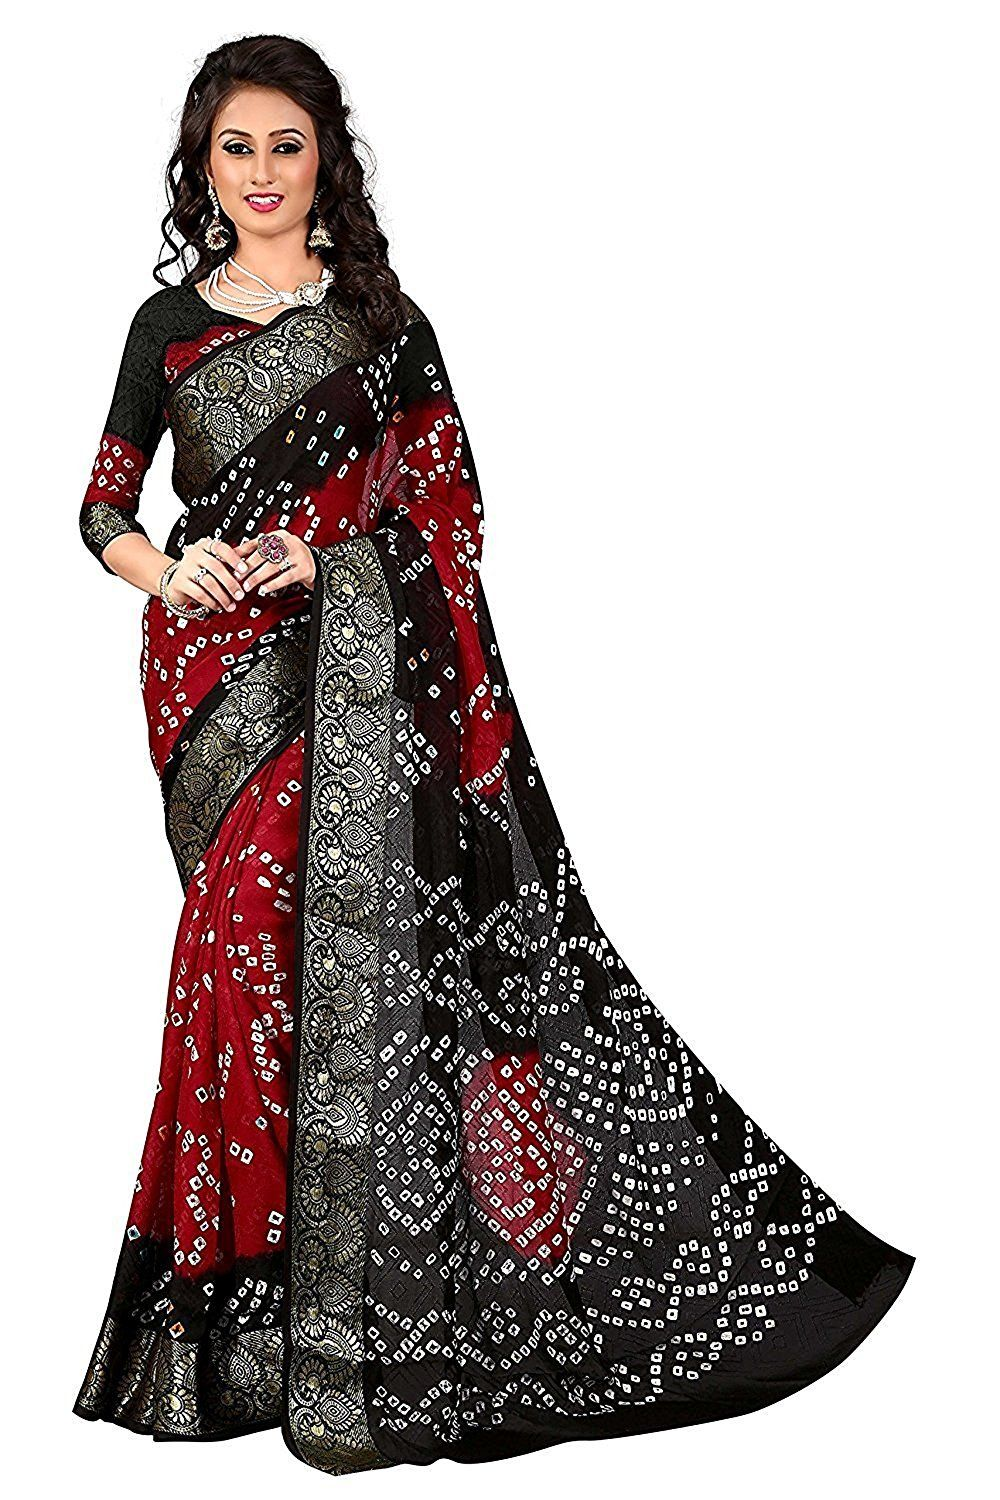 aebce96896 Fabdiamond Cotton Saree (T-761, Black Red, Free Size): Amazon.in: Clothing  & Accessories